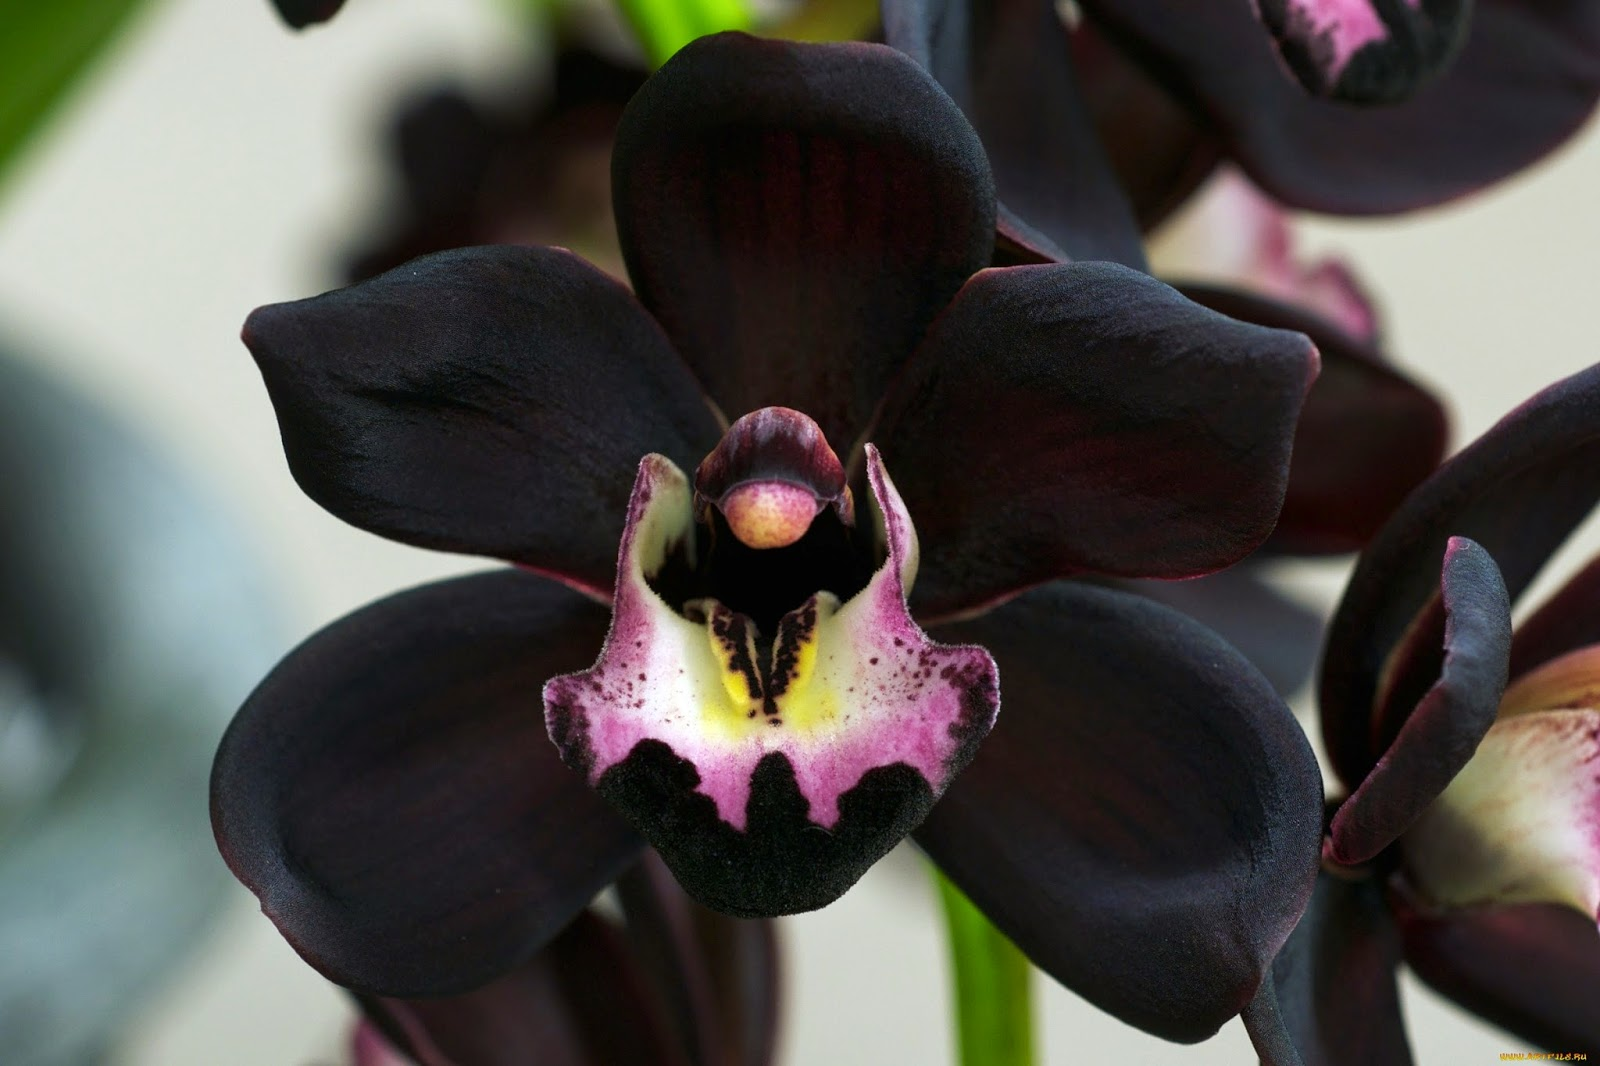 Charm behind the beautiful Black Orchid flowers